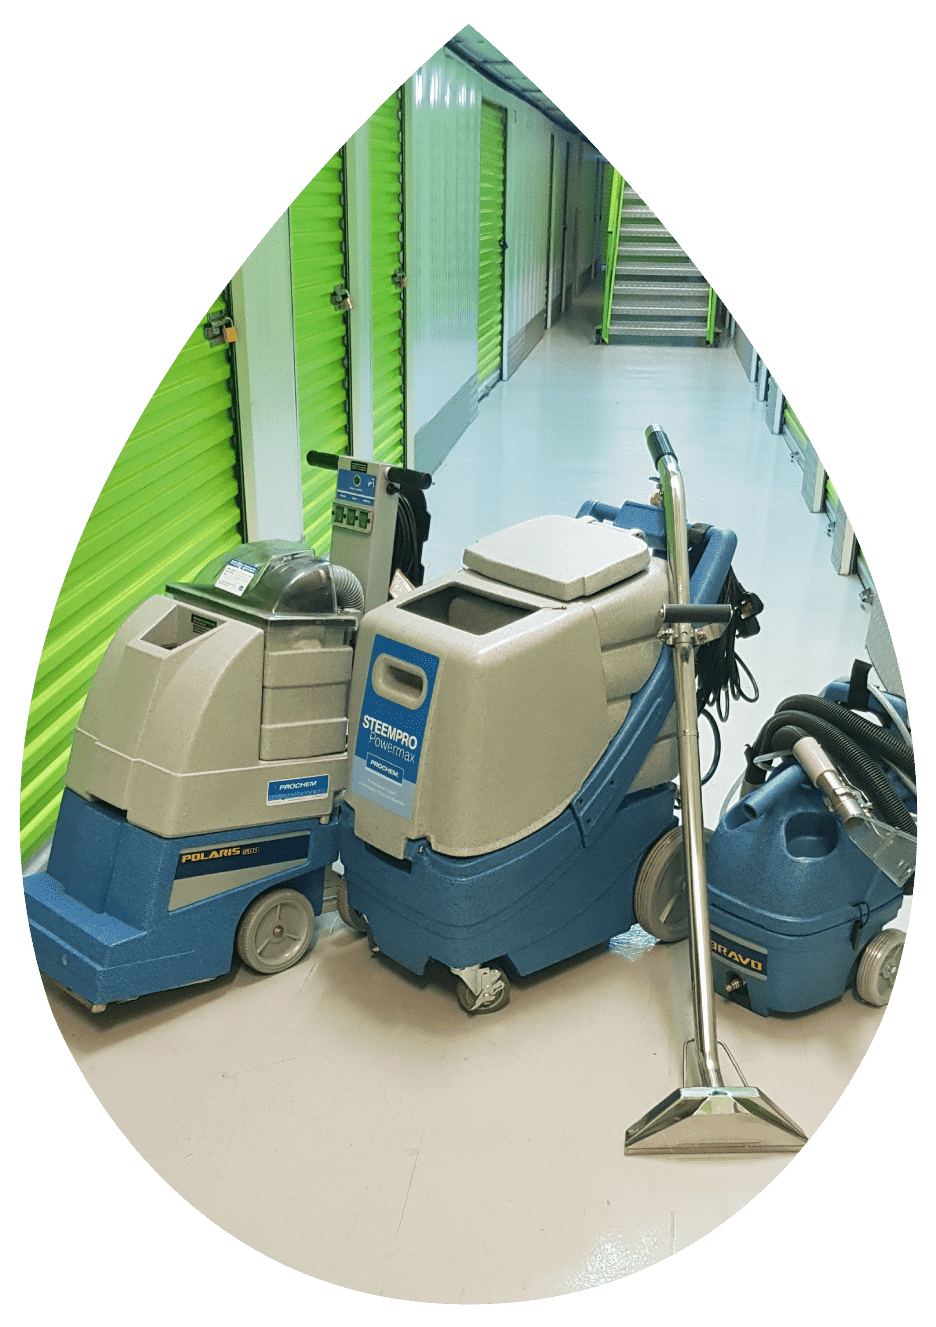 photo of commercial carpet cleaning equipment